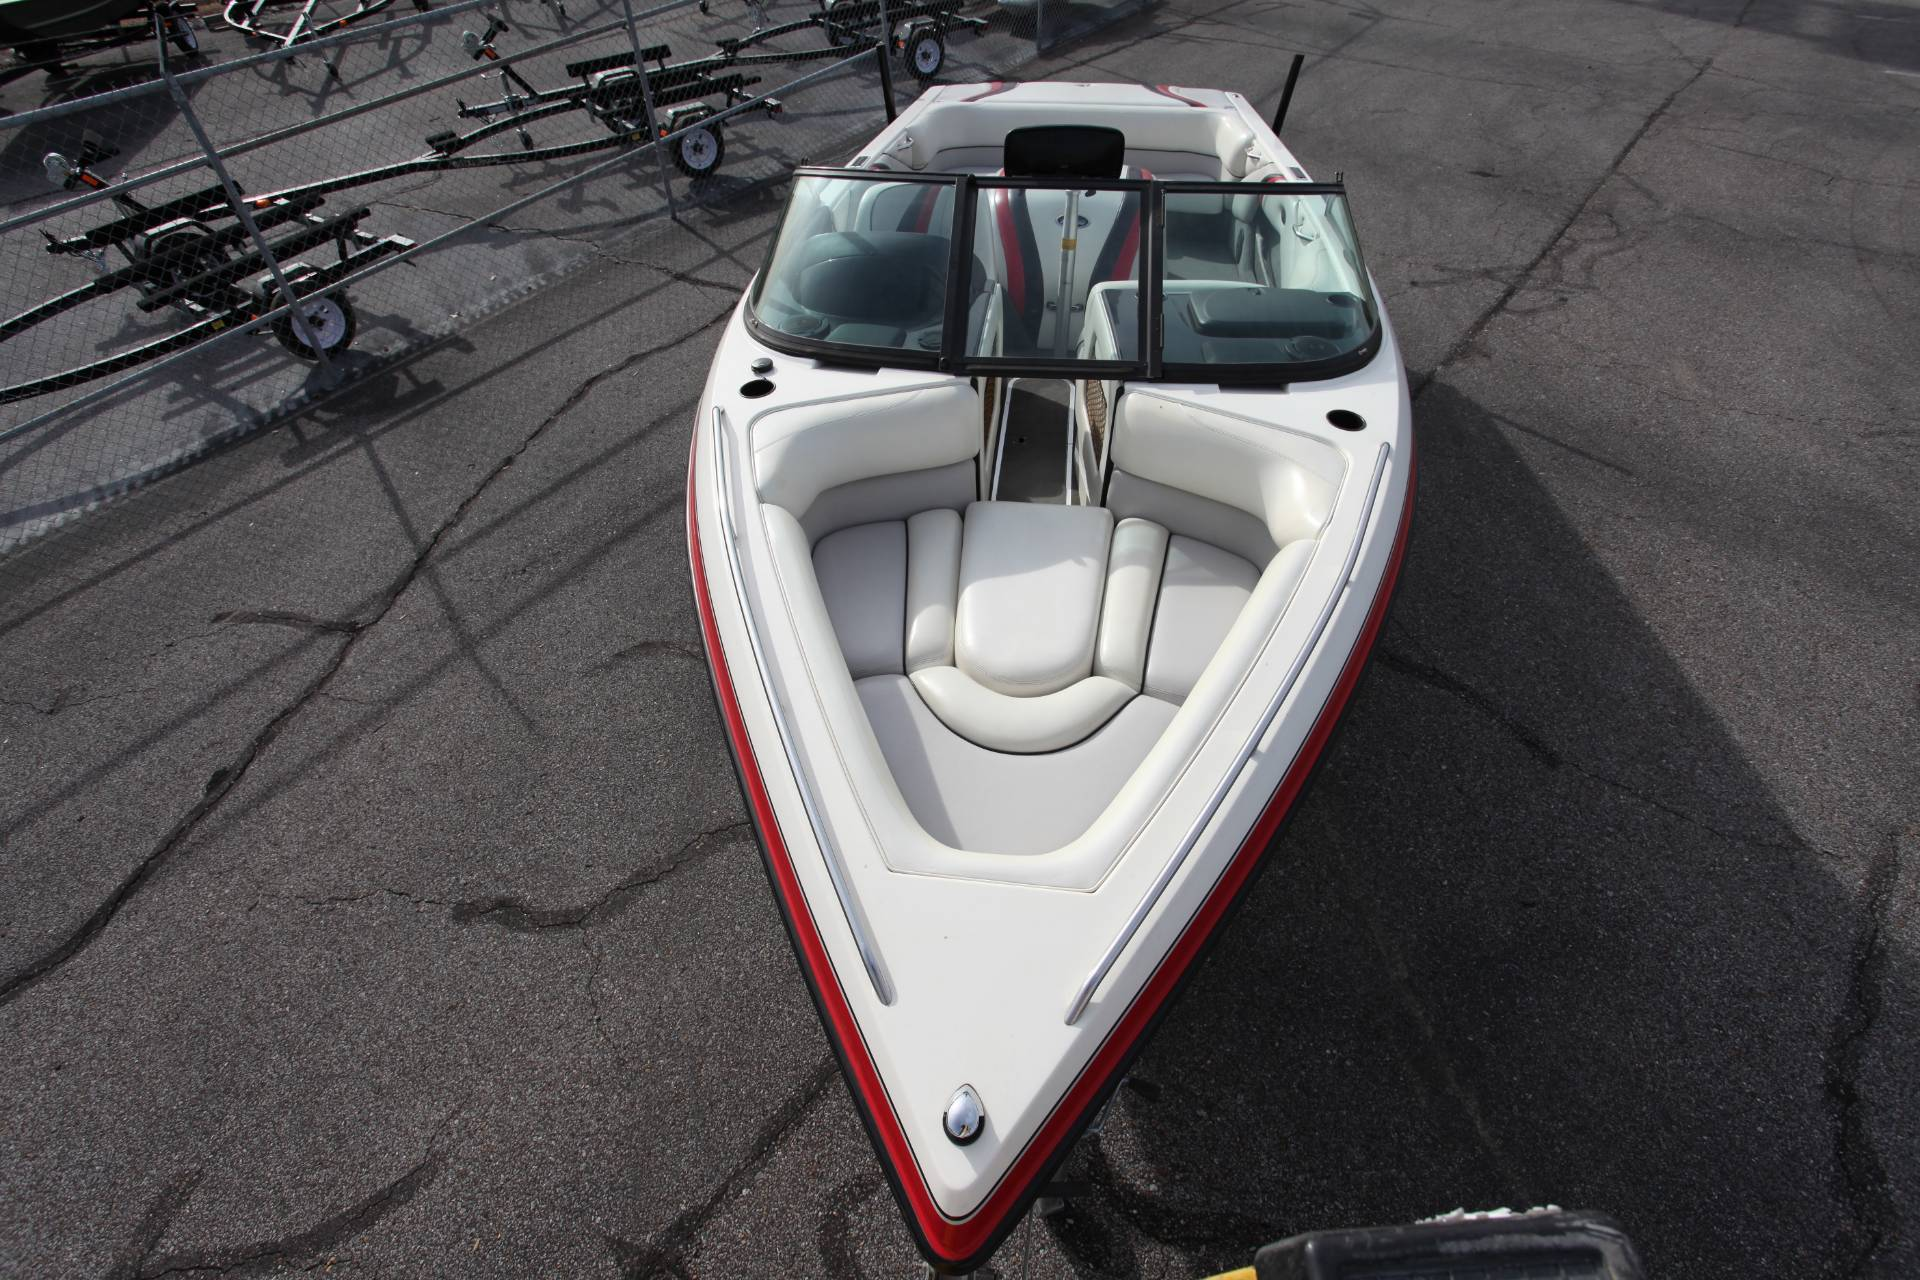 2001 Malibu Sunsetter LXi in Memphis, Tennessee - Photo 12